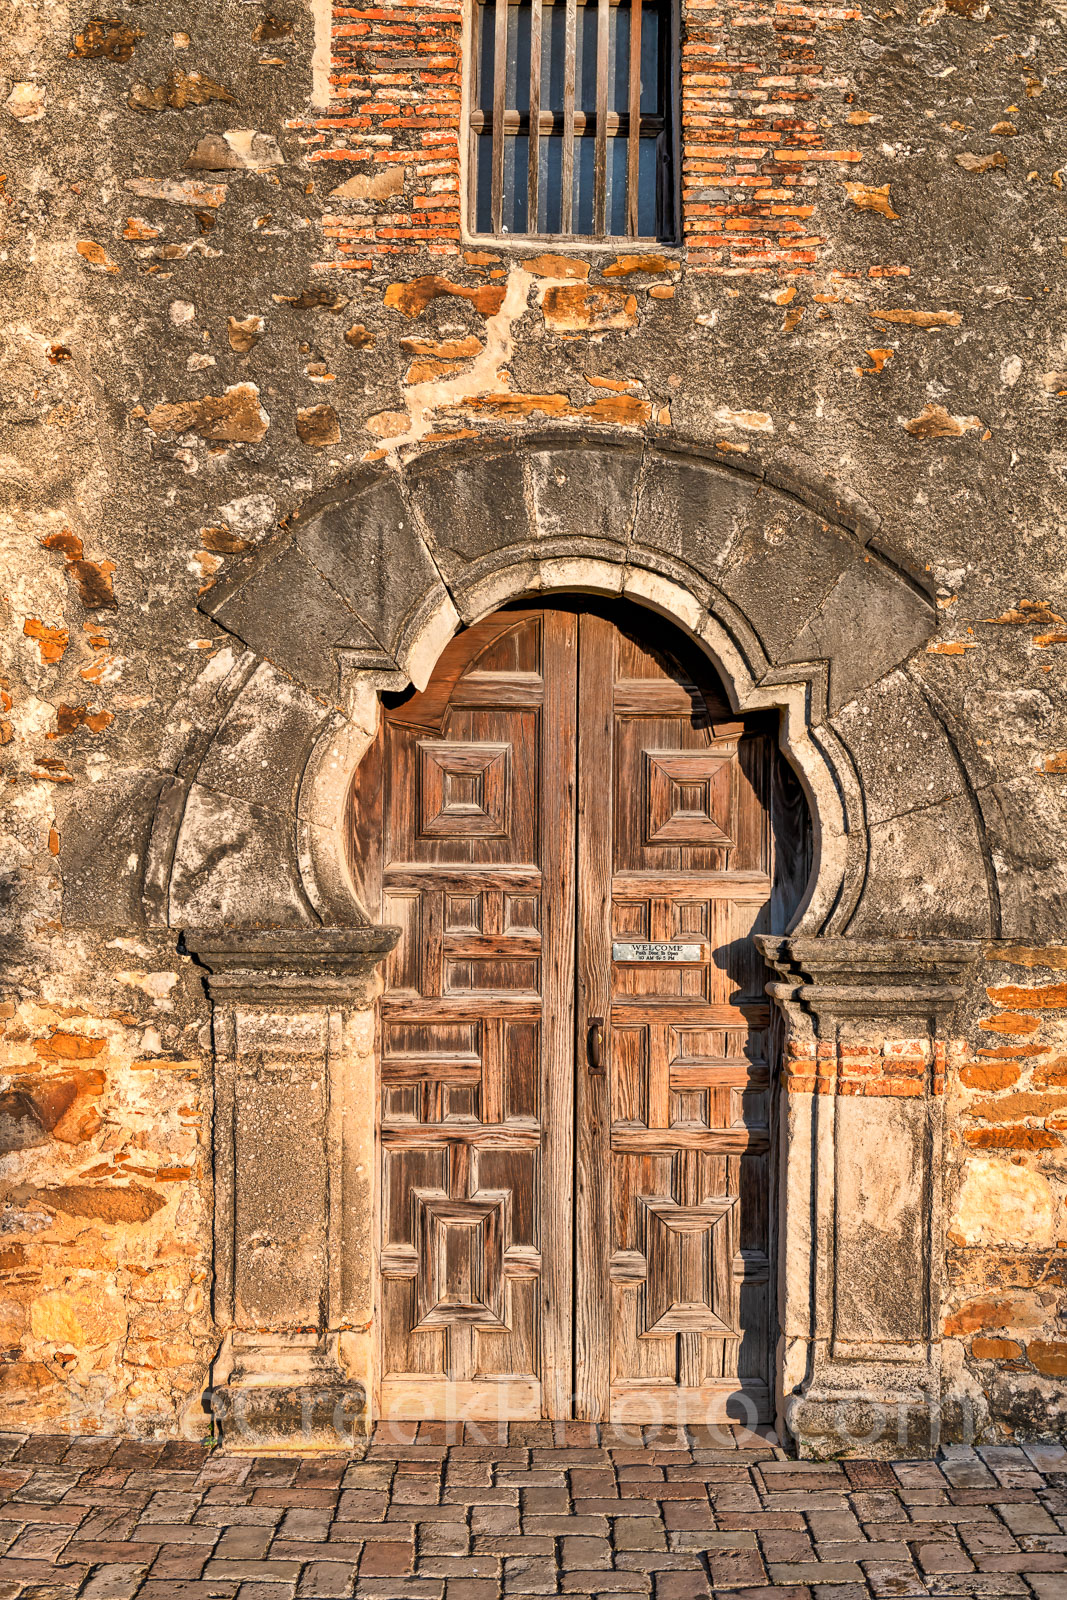 Mission Espada, San Antonio National Historical park, door, stone work, carpentry, blacksmith, texas missions, texas history, texas landmarks, landmarks,, photo